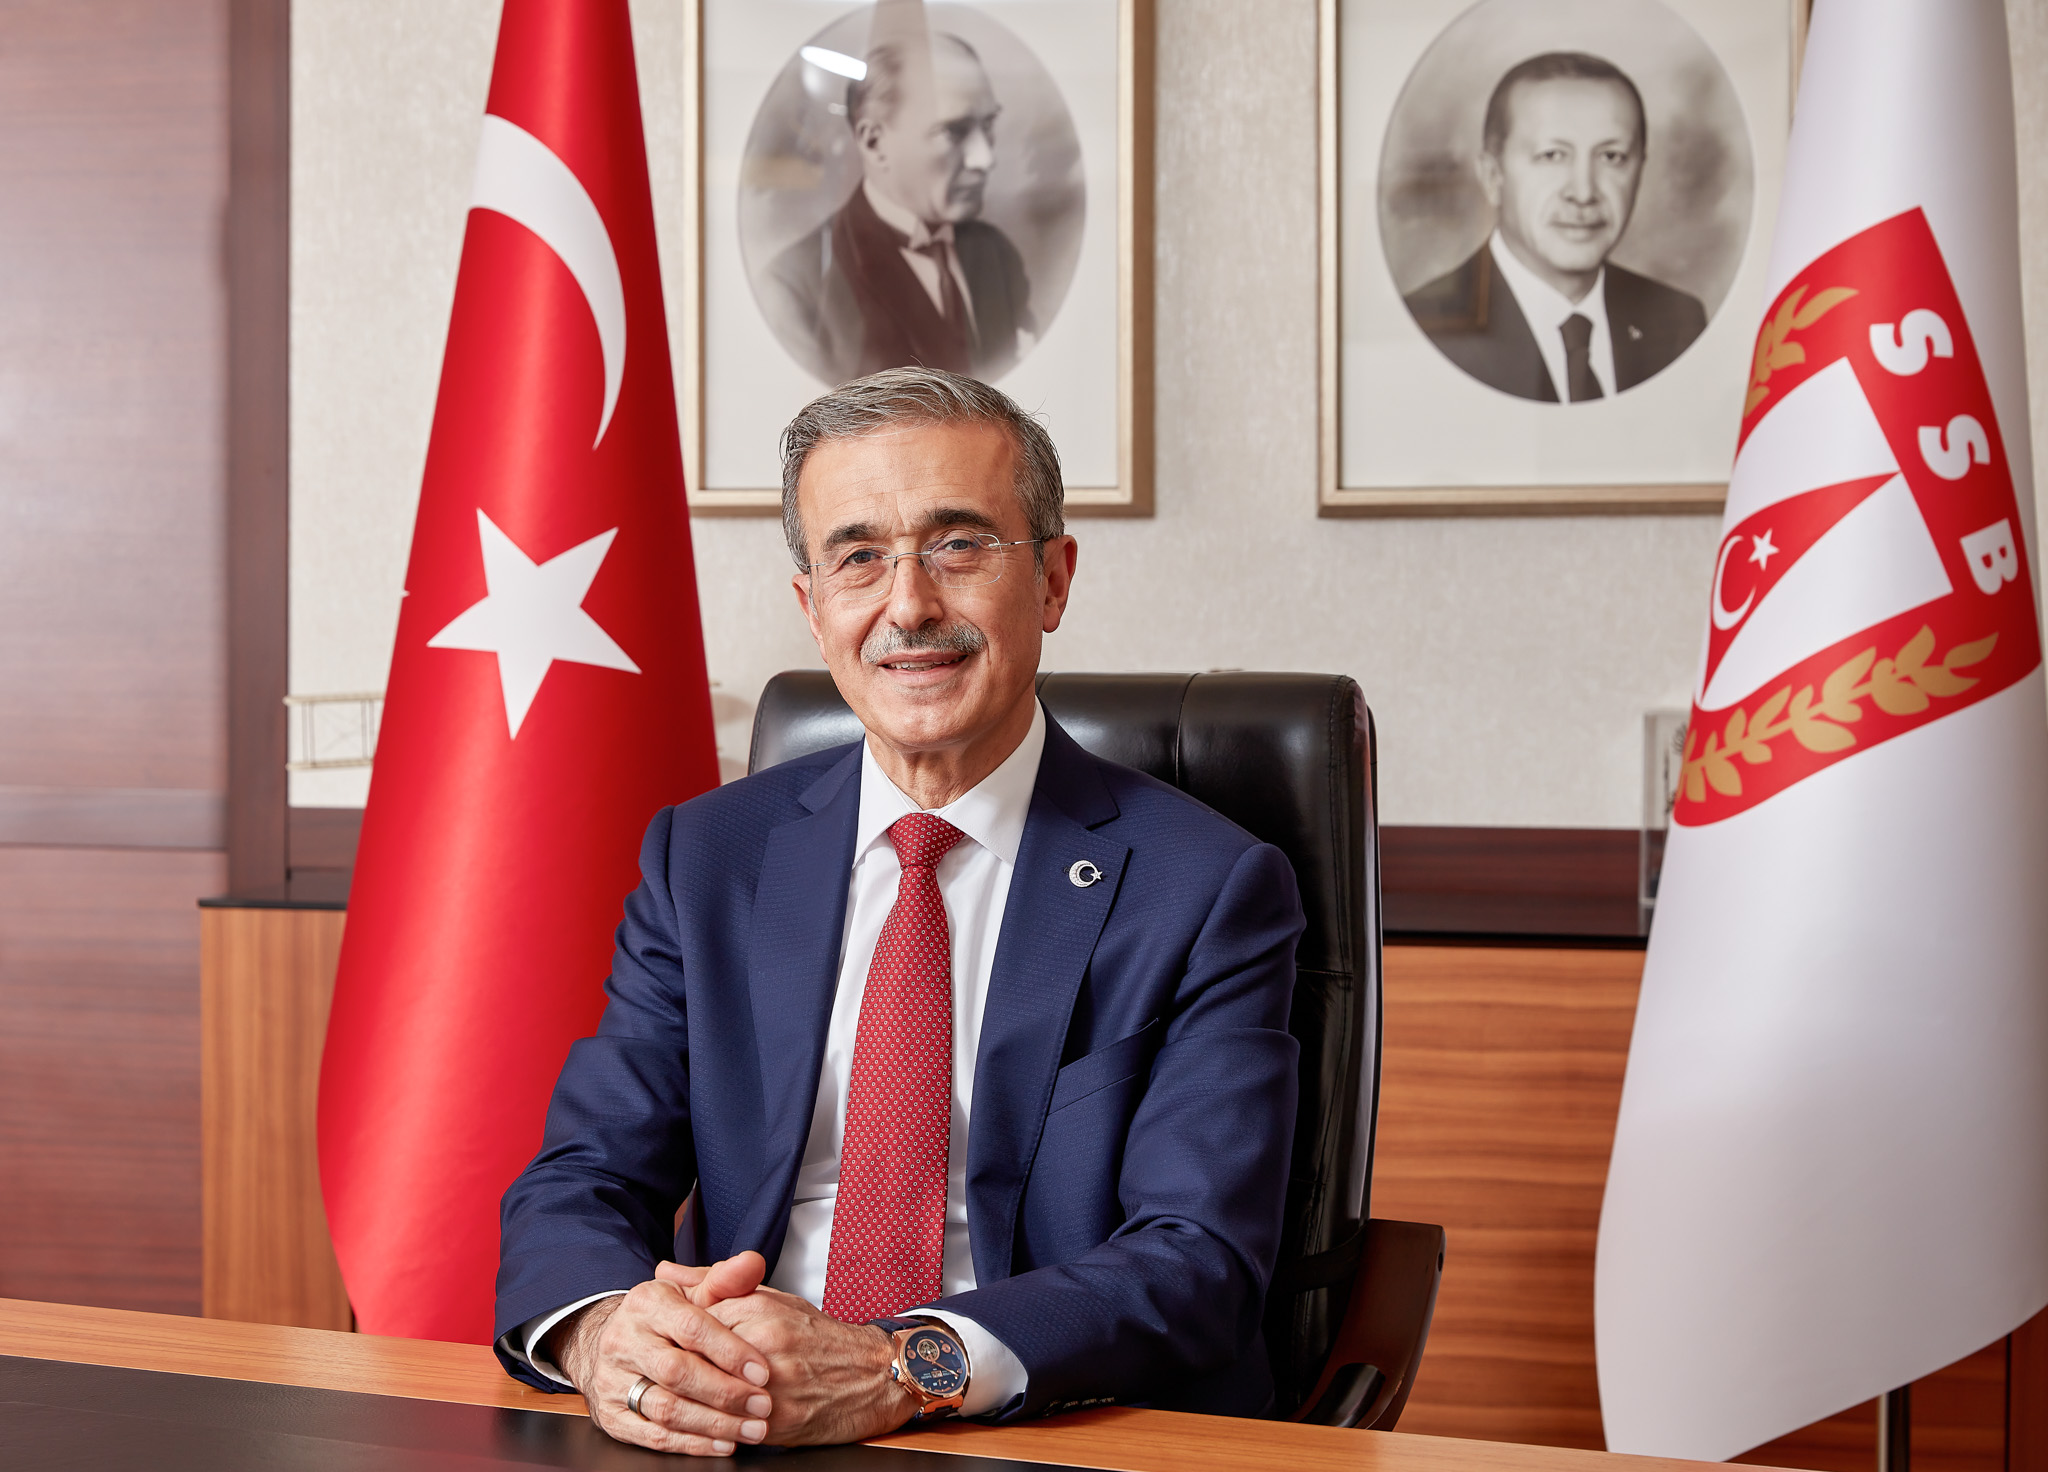 SSB President Prof. İsmail Demir Attended our Live Interview Broadcast Via Video Conference